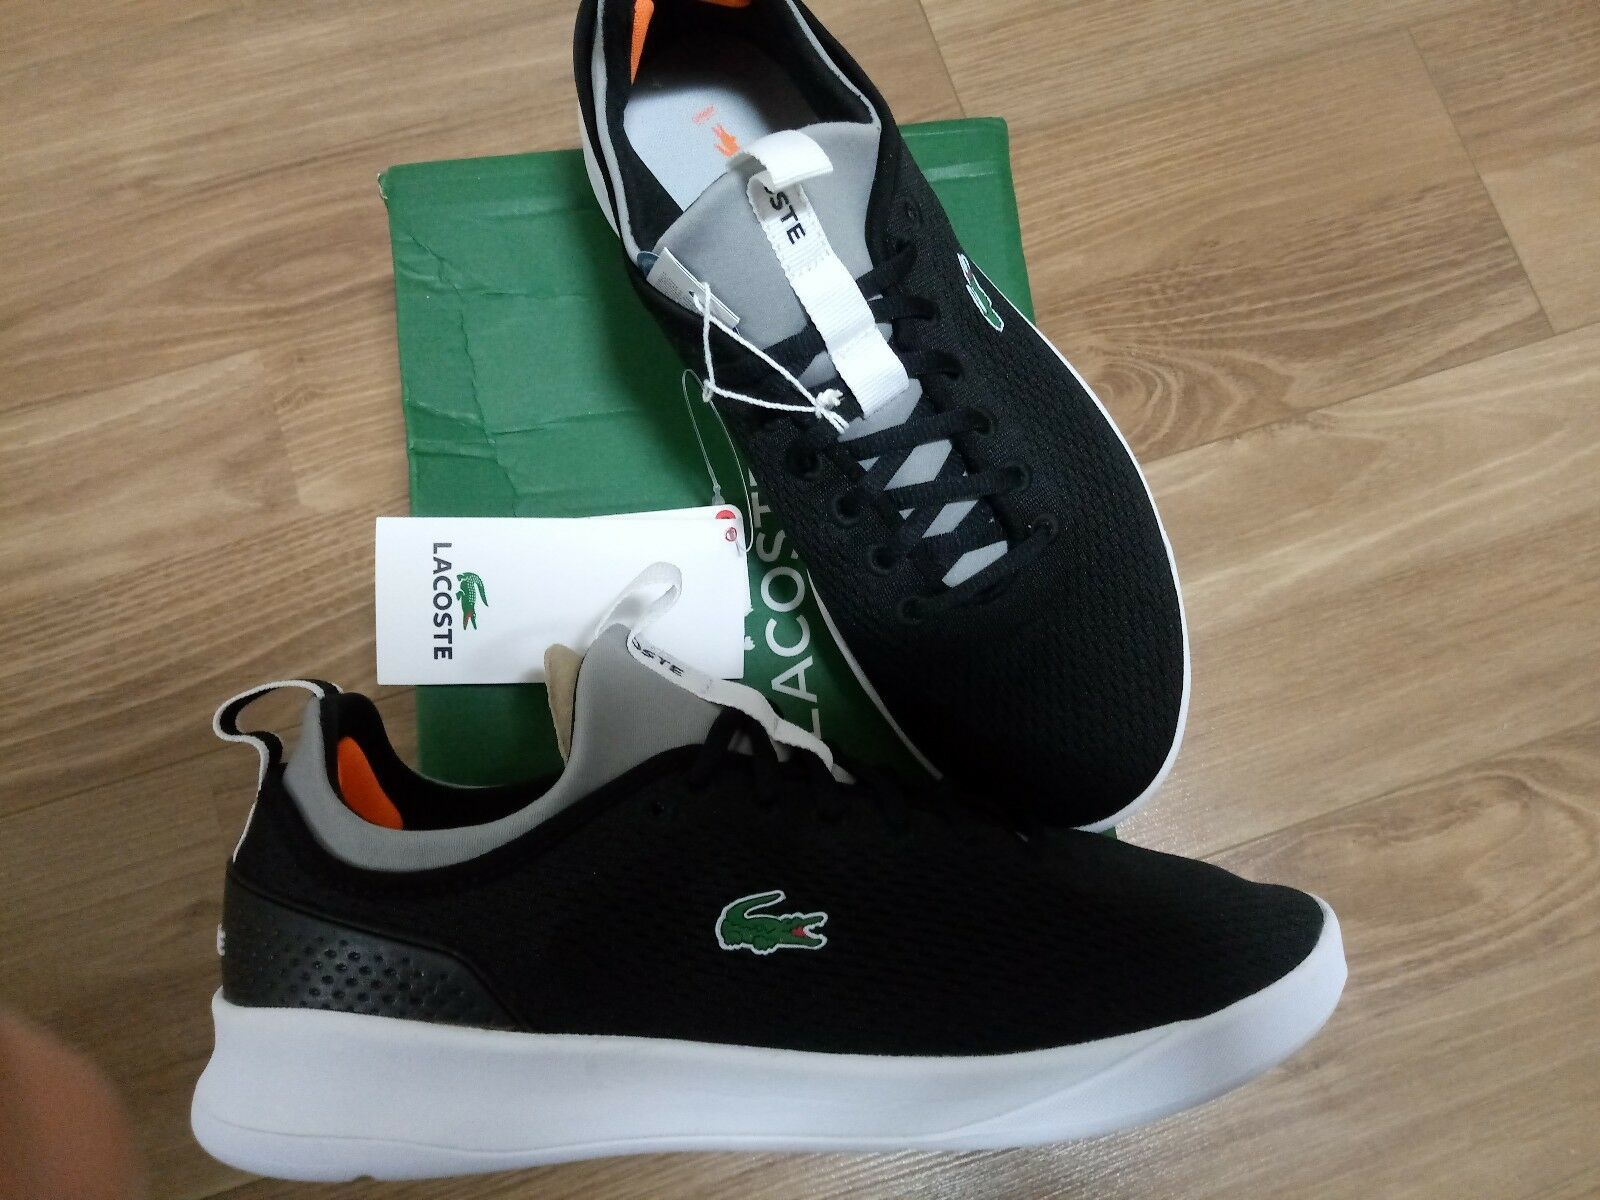 LACOSTE LIFE STYLE Turnschuhe LT SPIRIT 2.0 RZ0032M18A